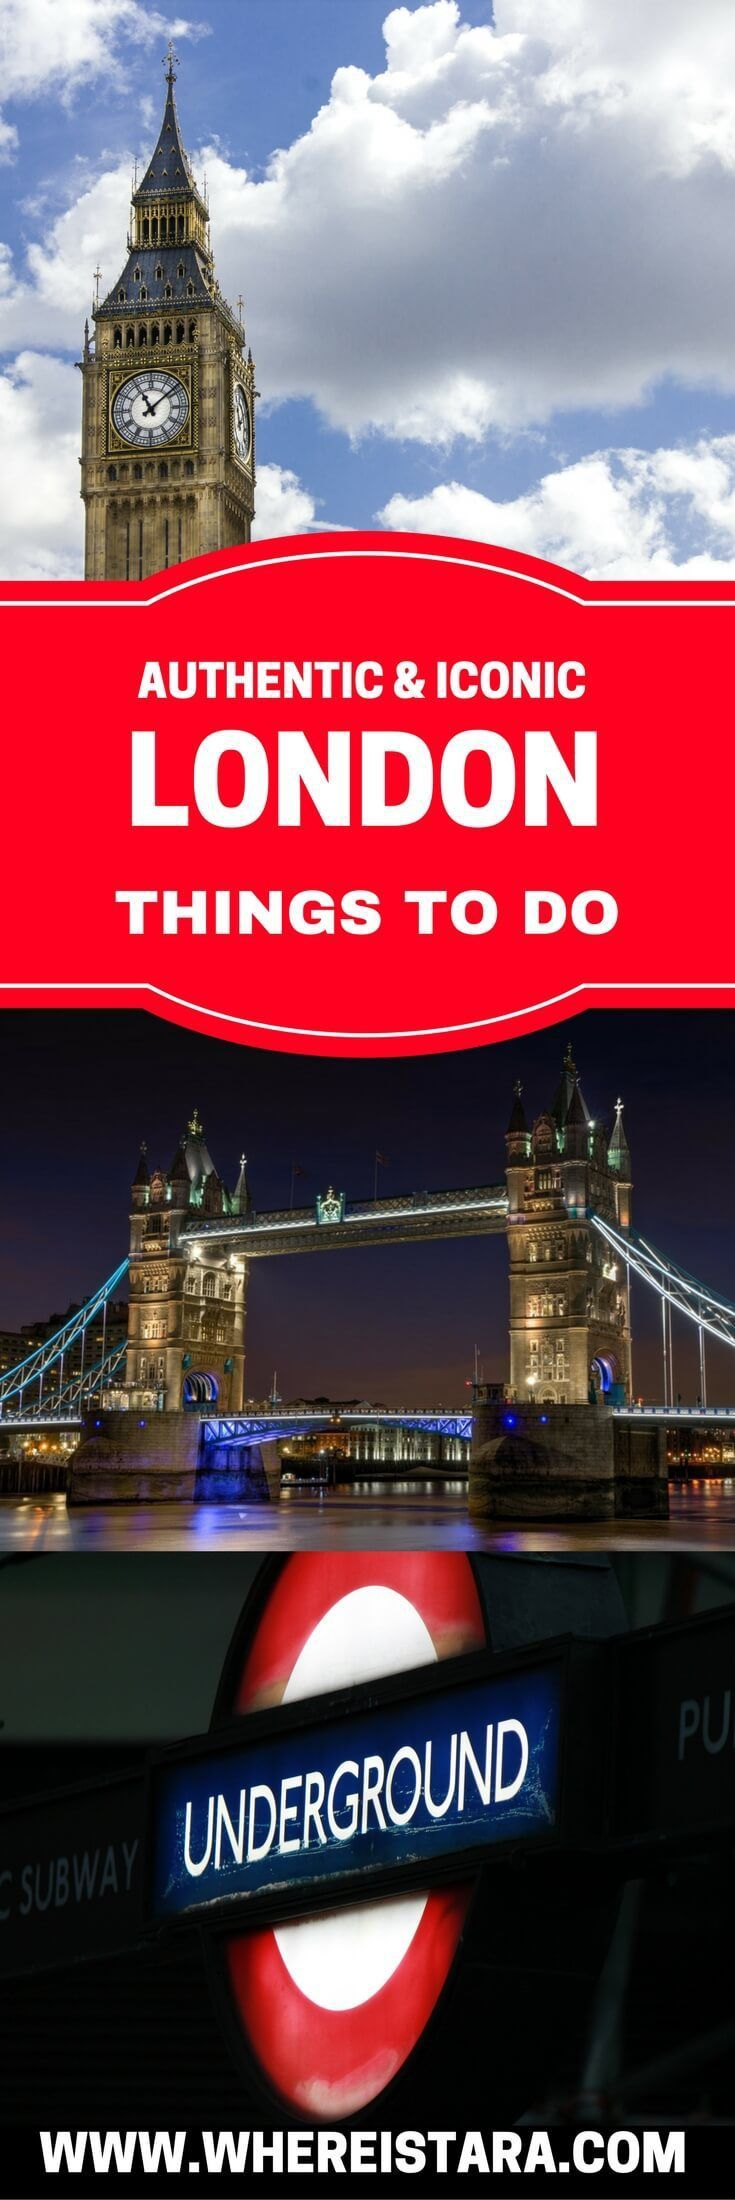 Authentic and iconic things to do in london. From the Tower Bridge to Brixton Market, staying in Aldgate and beyond! There are so many great things to do in London and so many places to stay in London. Let me tell you all about this amazing capital city.